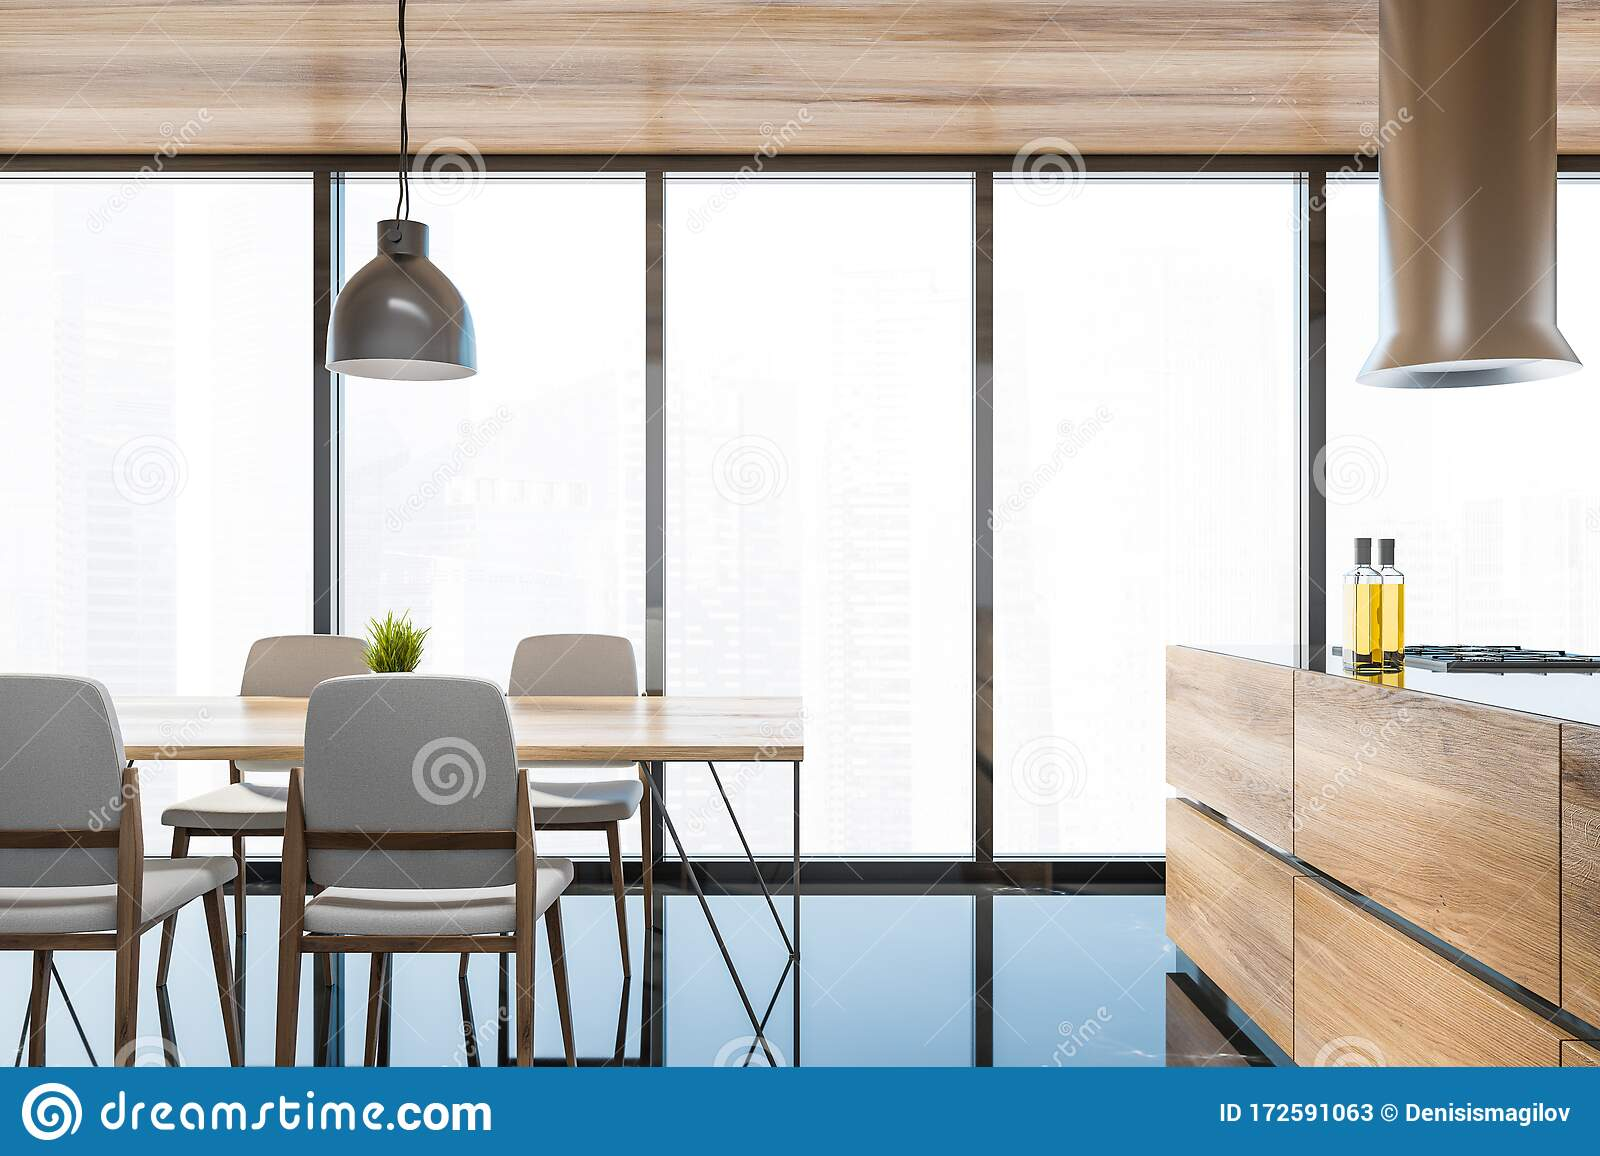 Stylish Panoramic Kitchen With Table And Island Stock Illustration Illustration Of Chair Oven 172591063